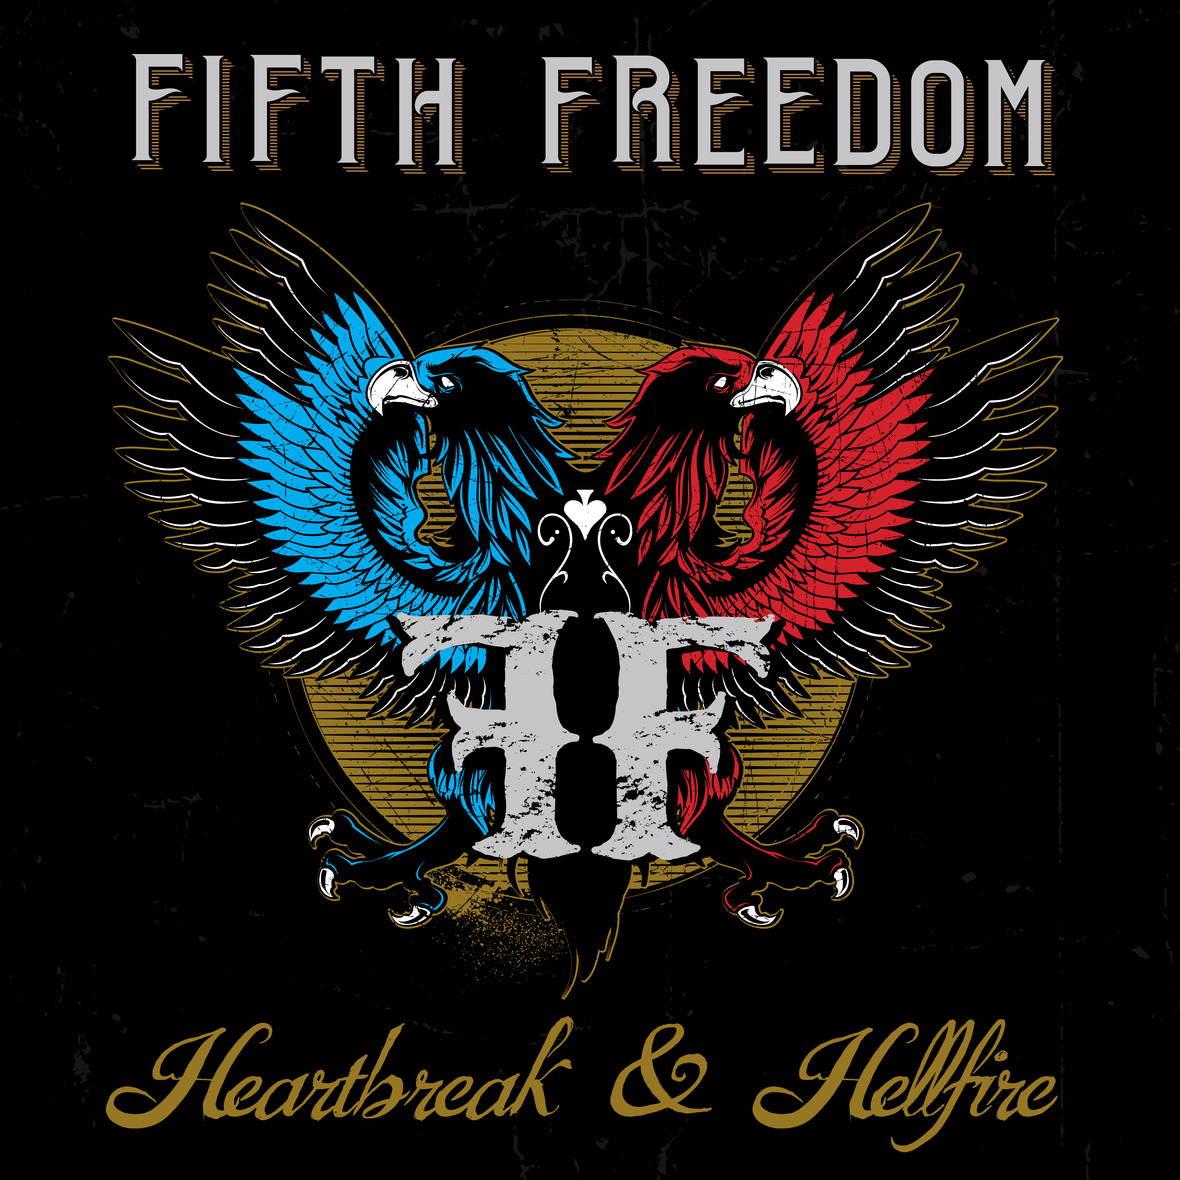 Fifth Freedom Heartbreak and Hellfire Album Cover